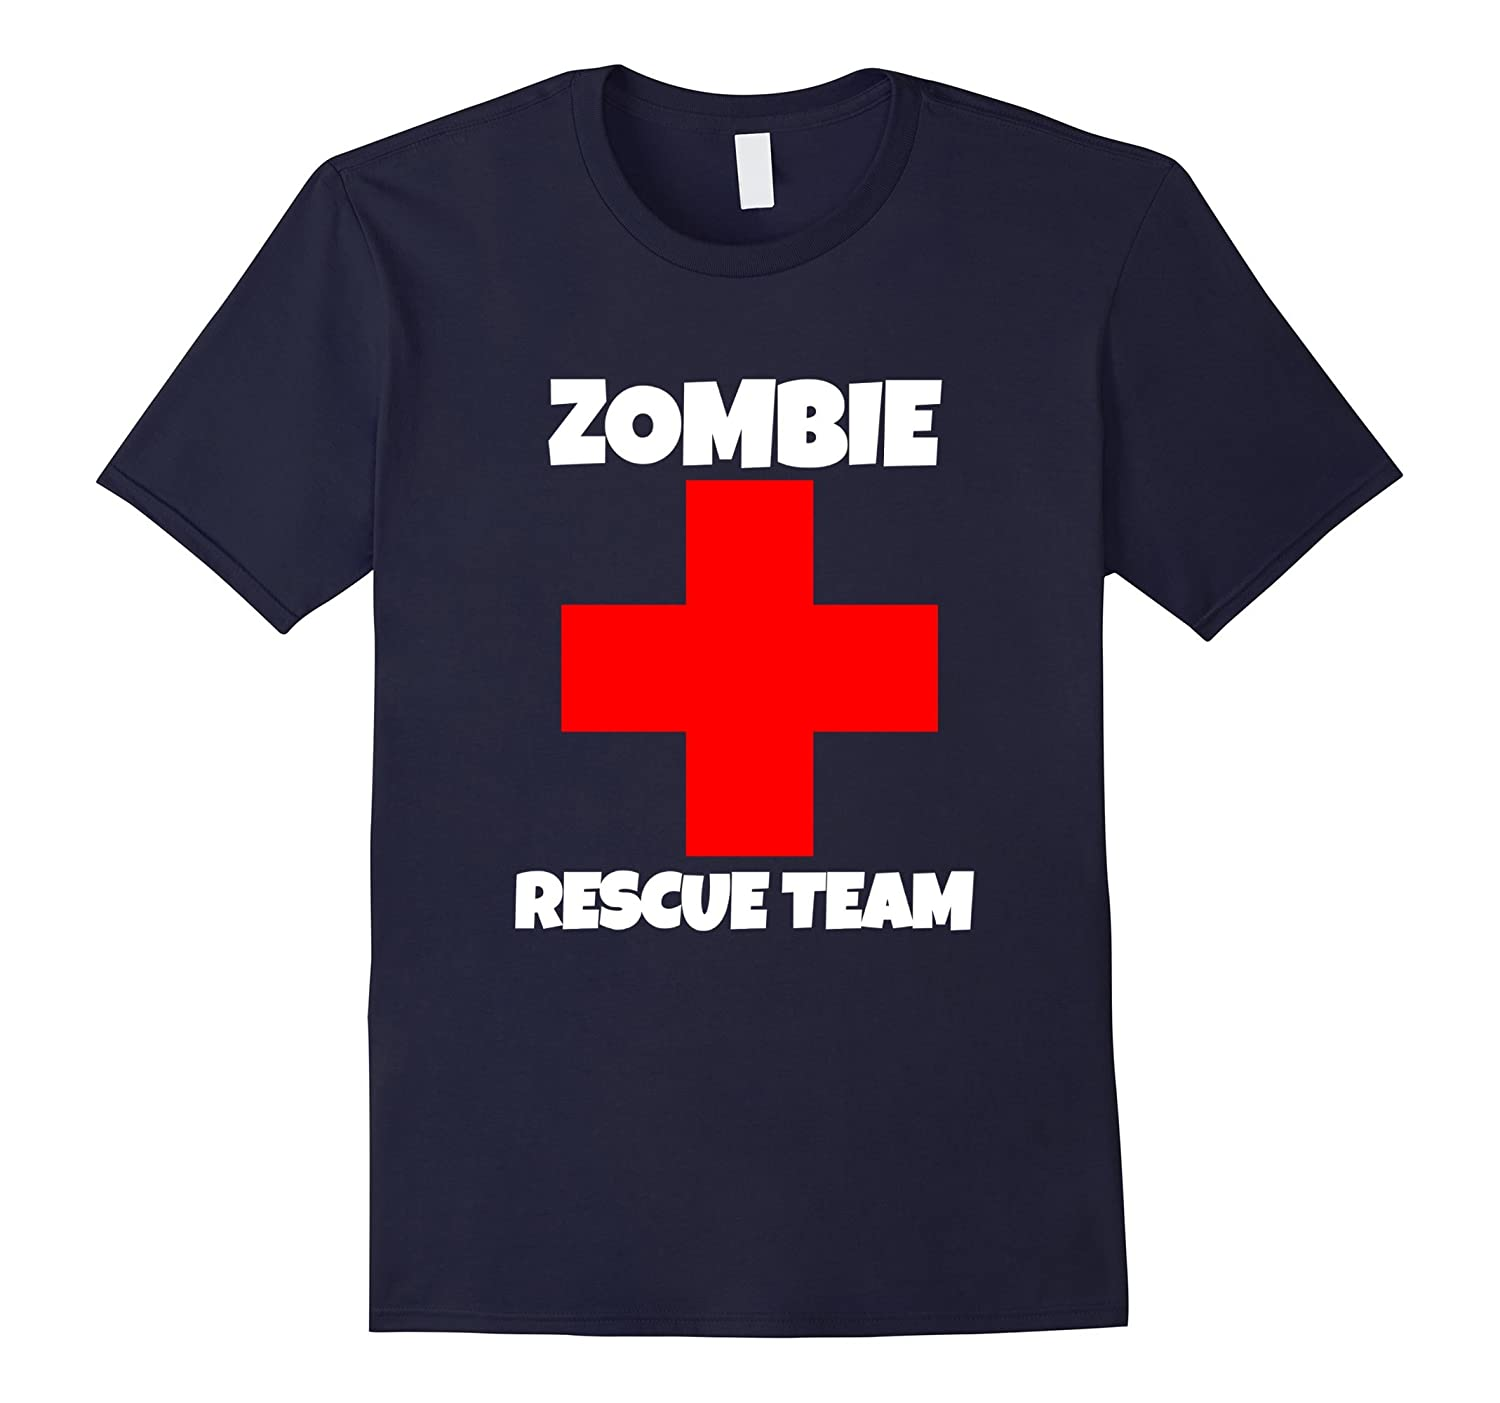 Zombie Outbreak Rescue team shirt halloween novelty gift-FL